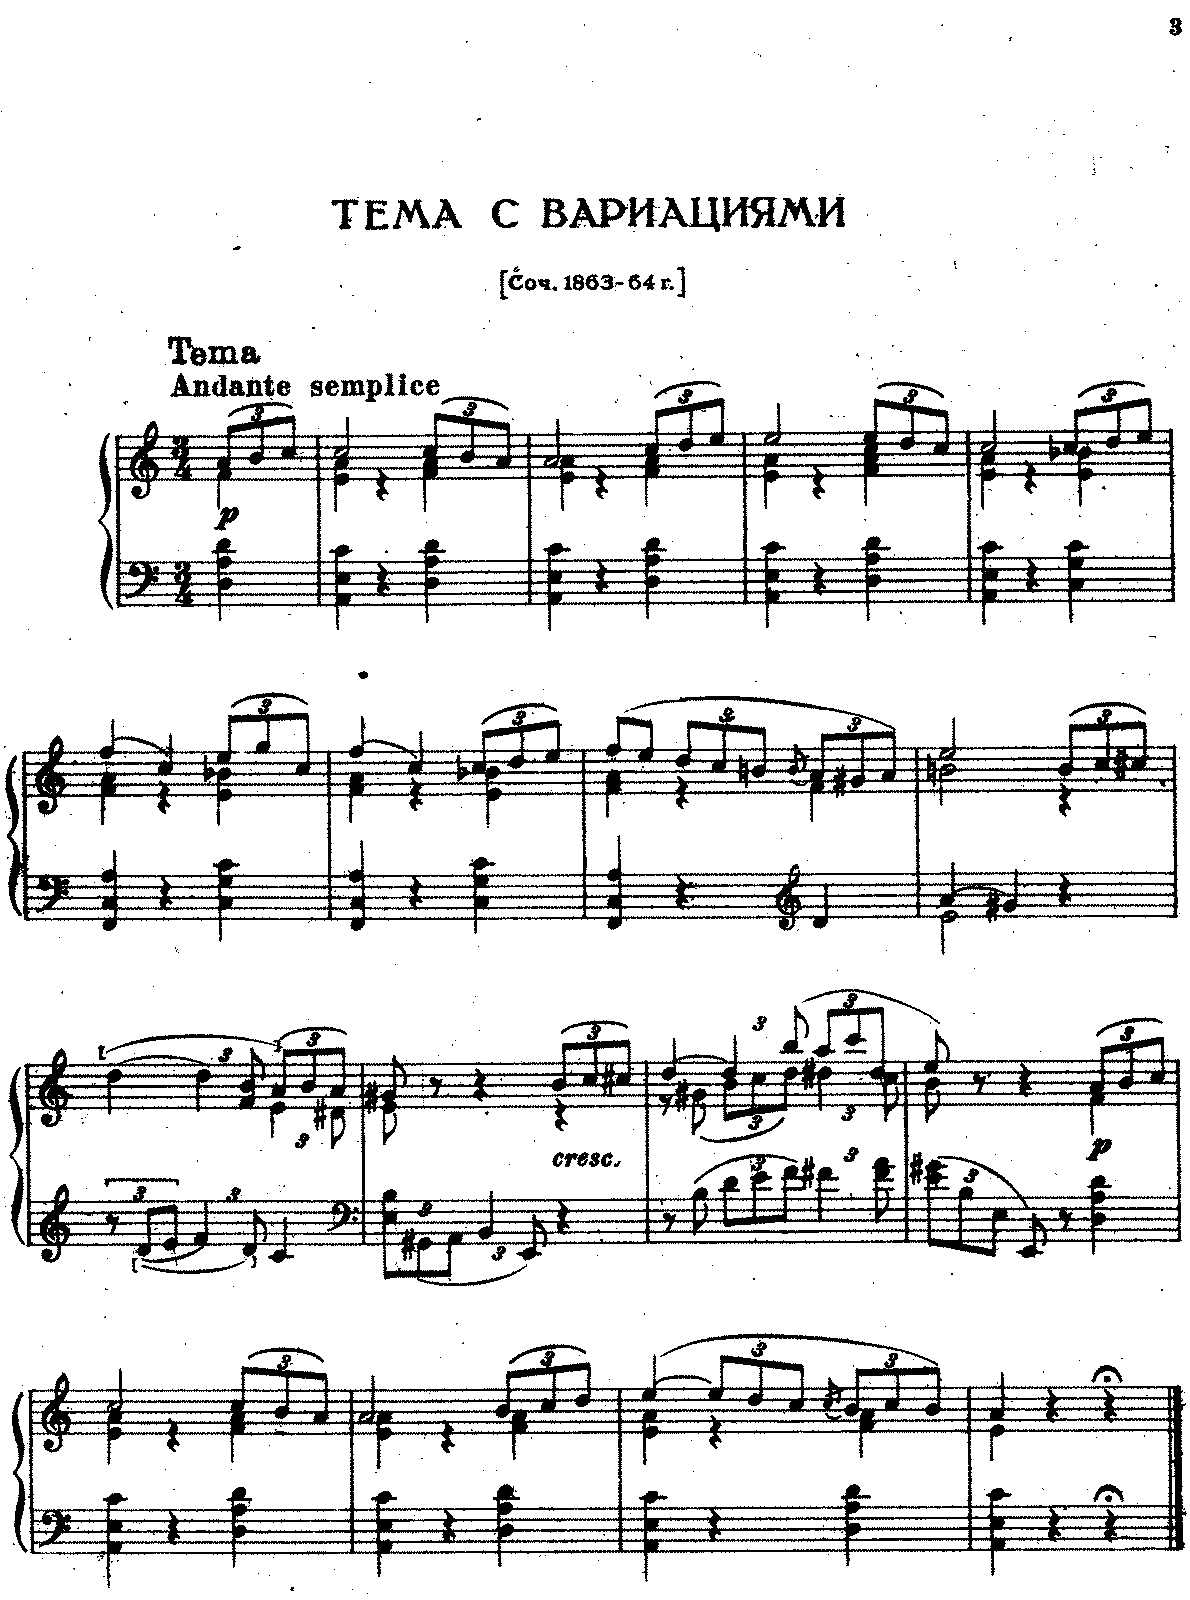 Tchaikovsku - Op.misc - Theme and Variations in A minor.pdf